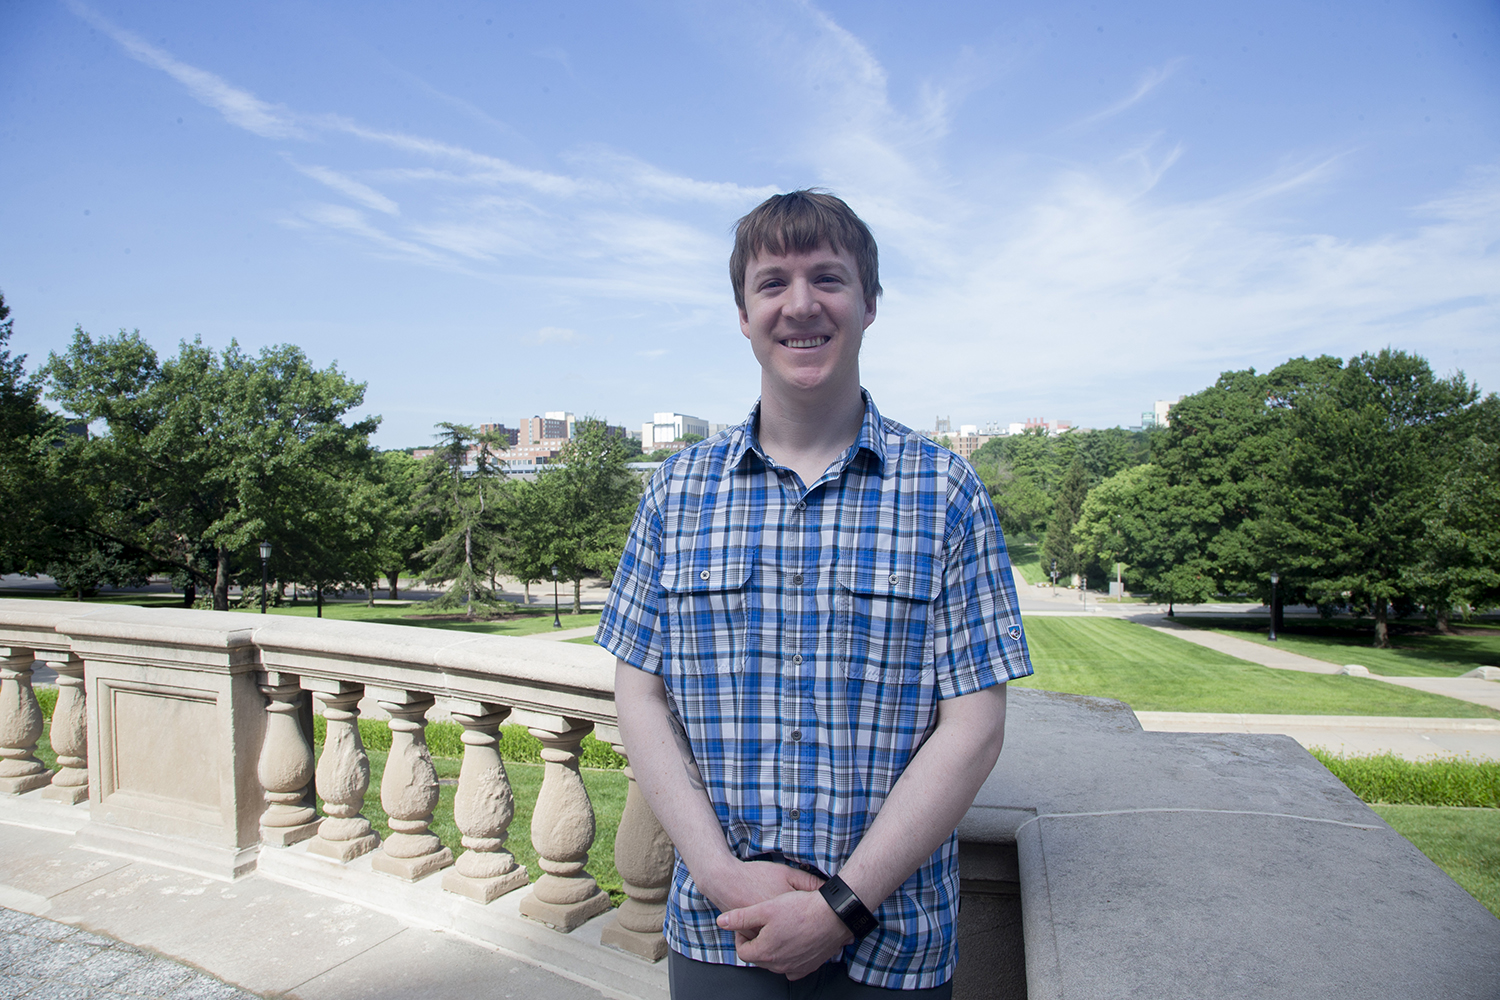 Fullbright scholar Erik Ovrom poses for a portrait outside the Old Capitol building on Thursday, July 4, 2019. Ovrom will be teaching English in Mexico City. (Emily Wangen/The Daily Iowan)